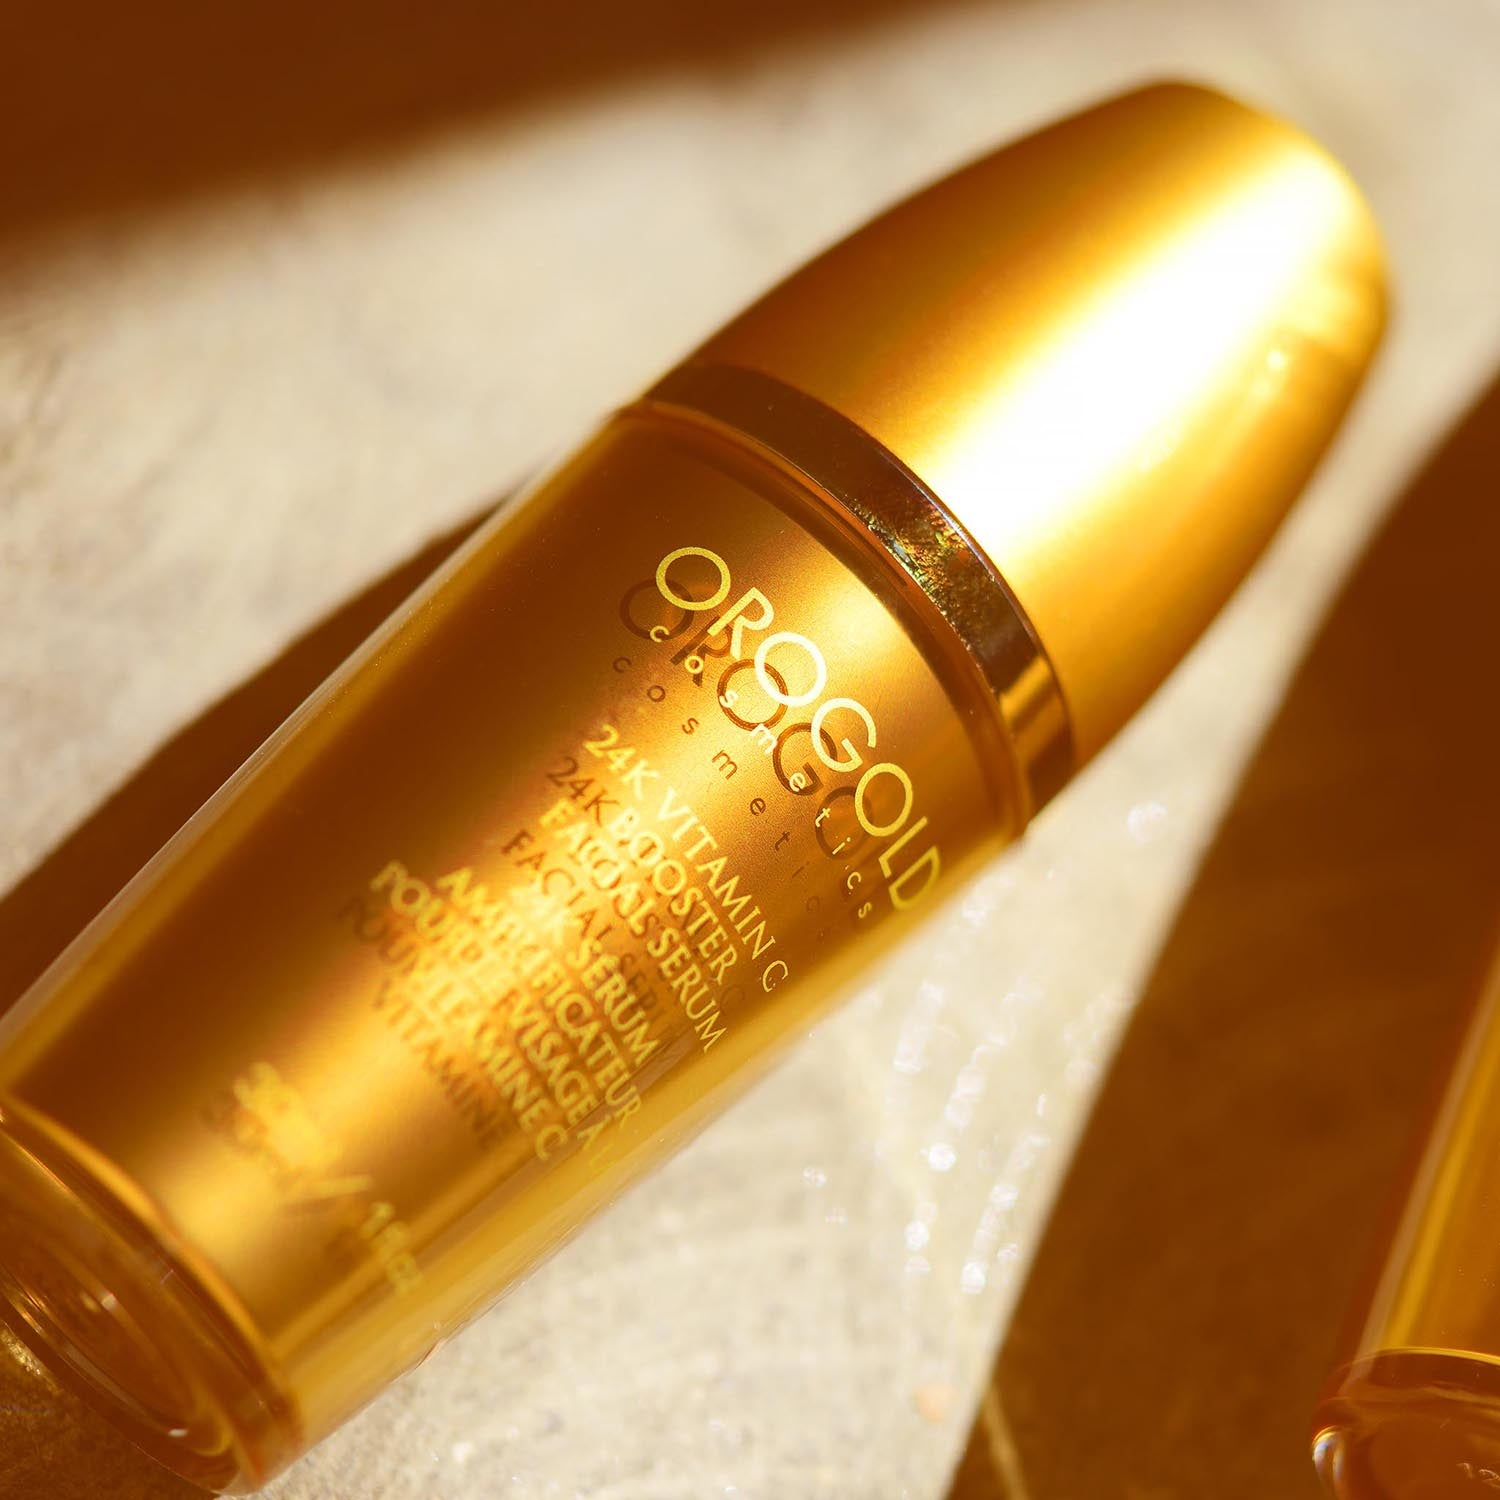 orogold vitamin c booster serum for face